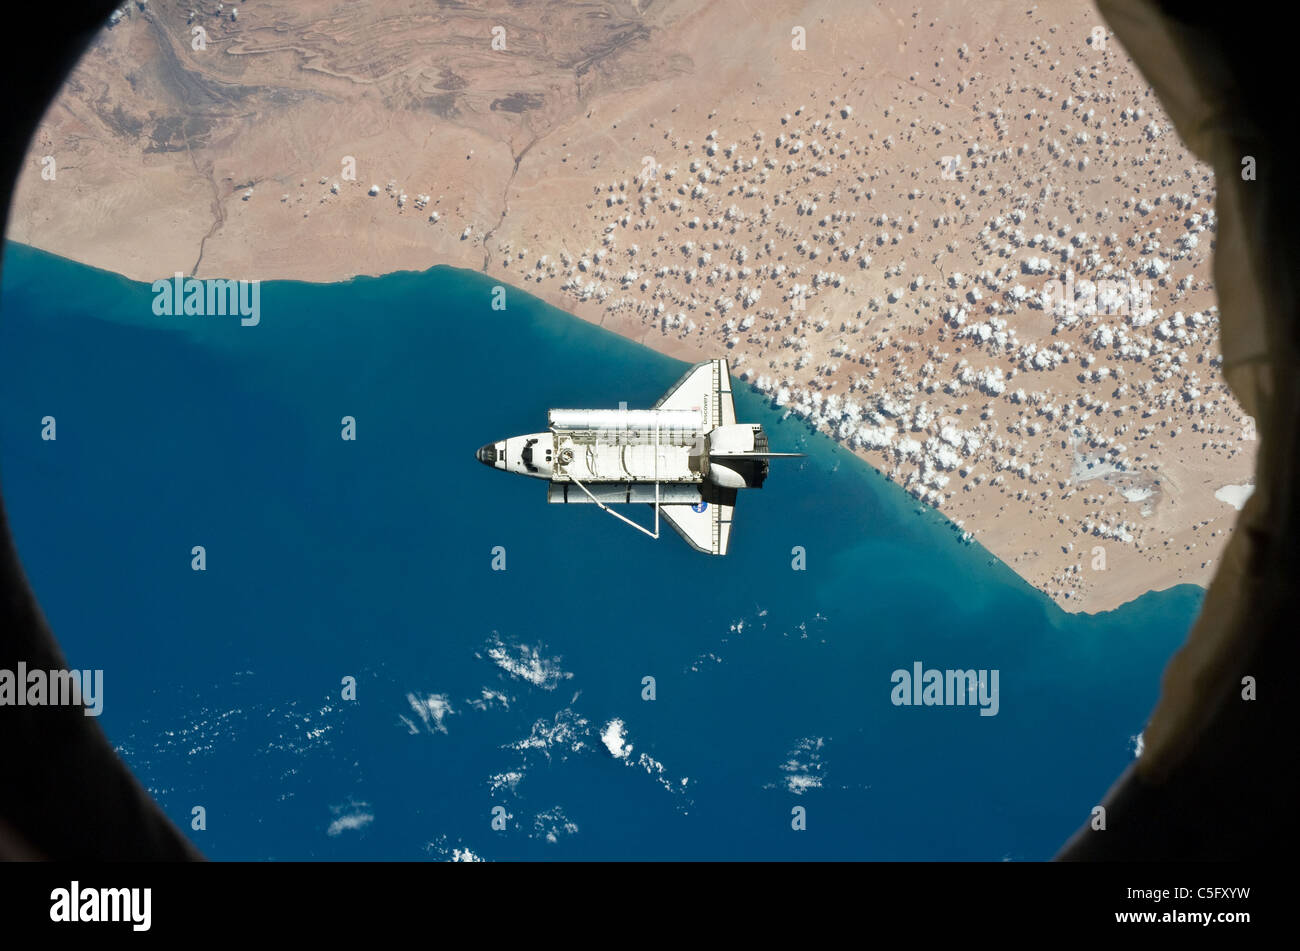 Space shuttle Discovery as seen from the International Space Station above southwestern coast of Morocco March 7 - Stock Image